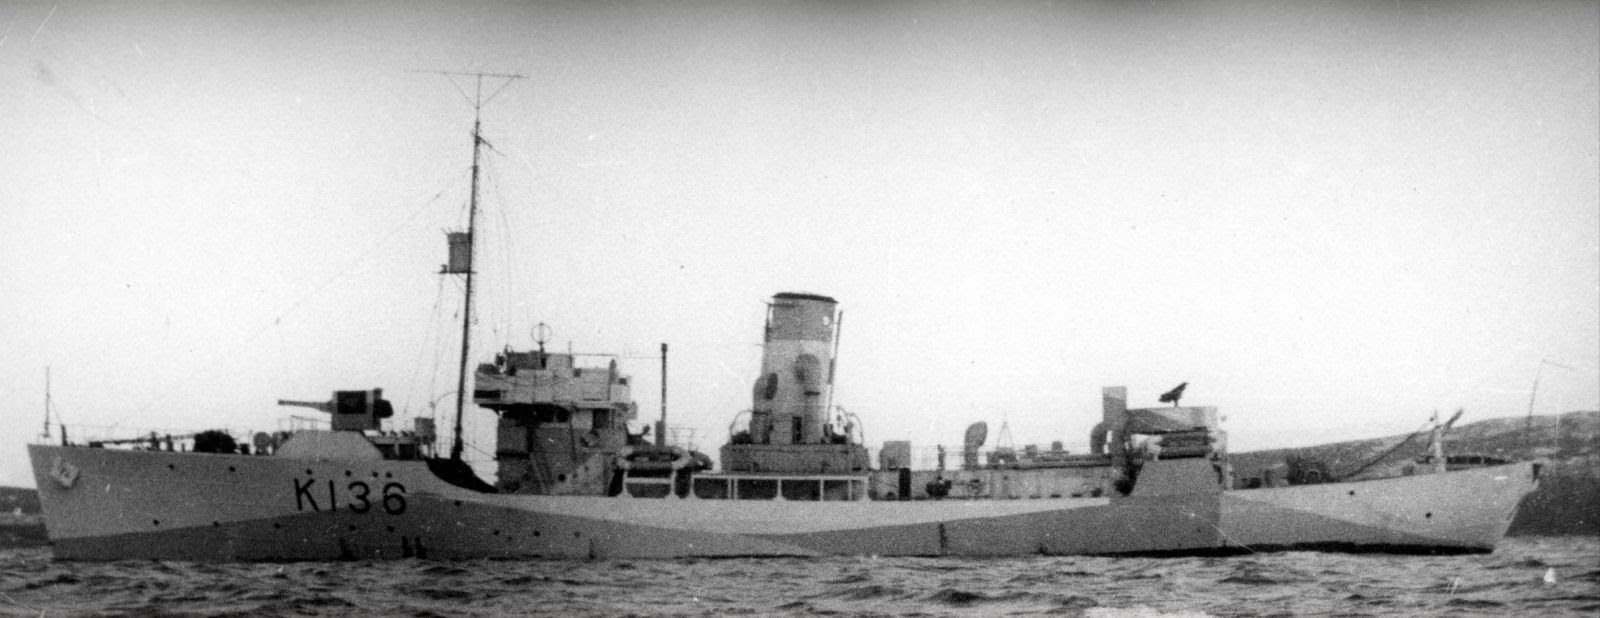 The disappearance of HMCS Shawinigan